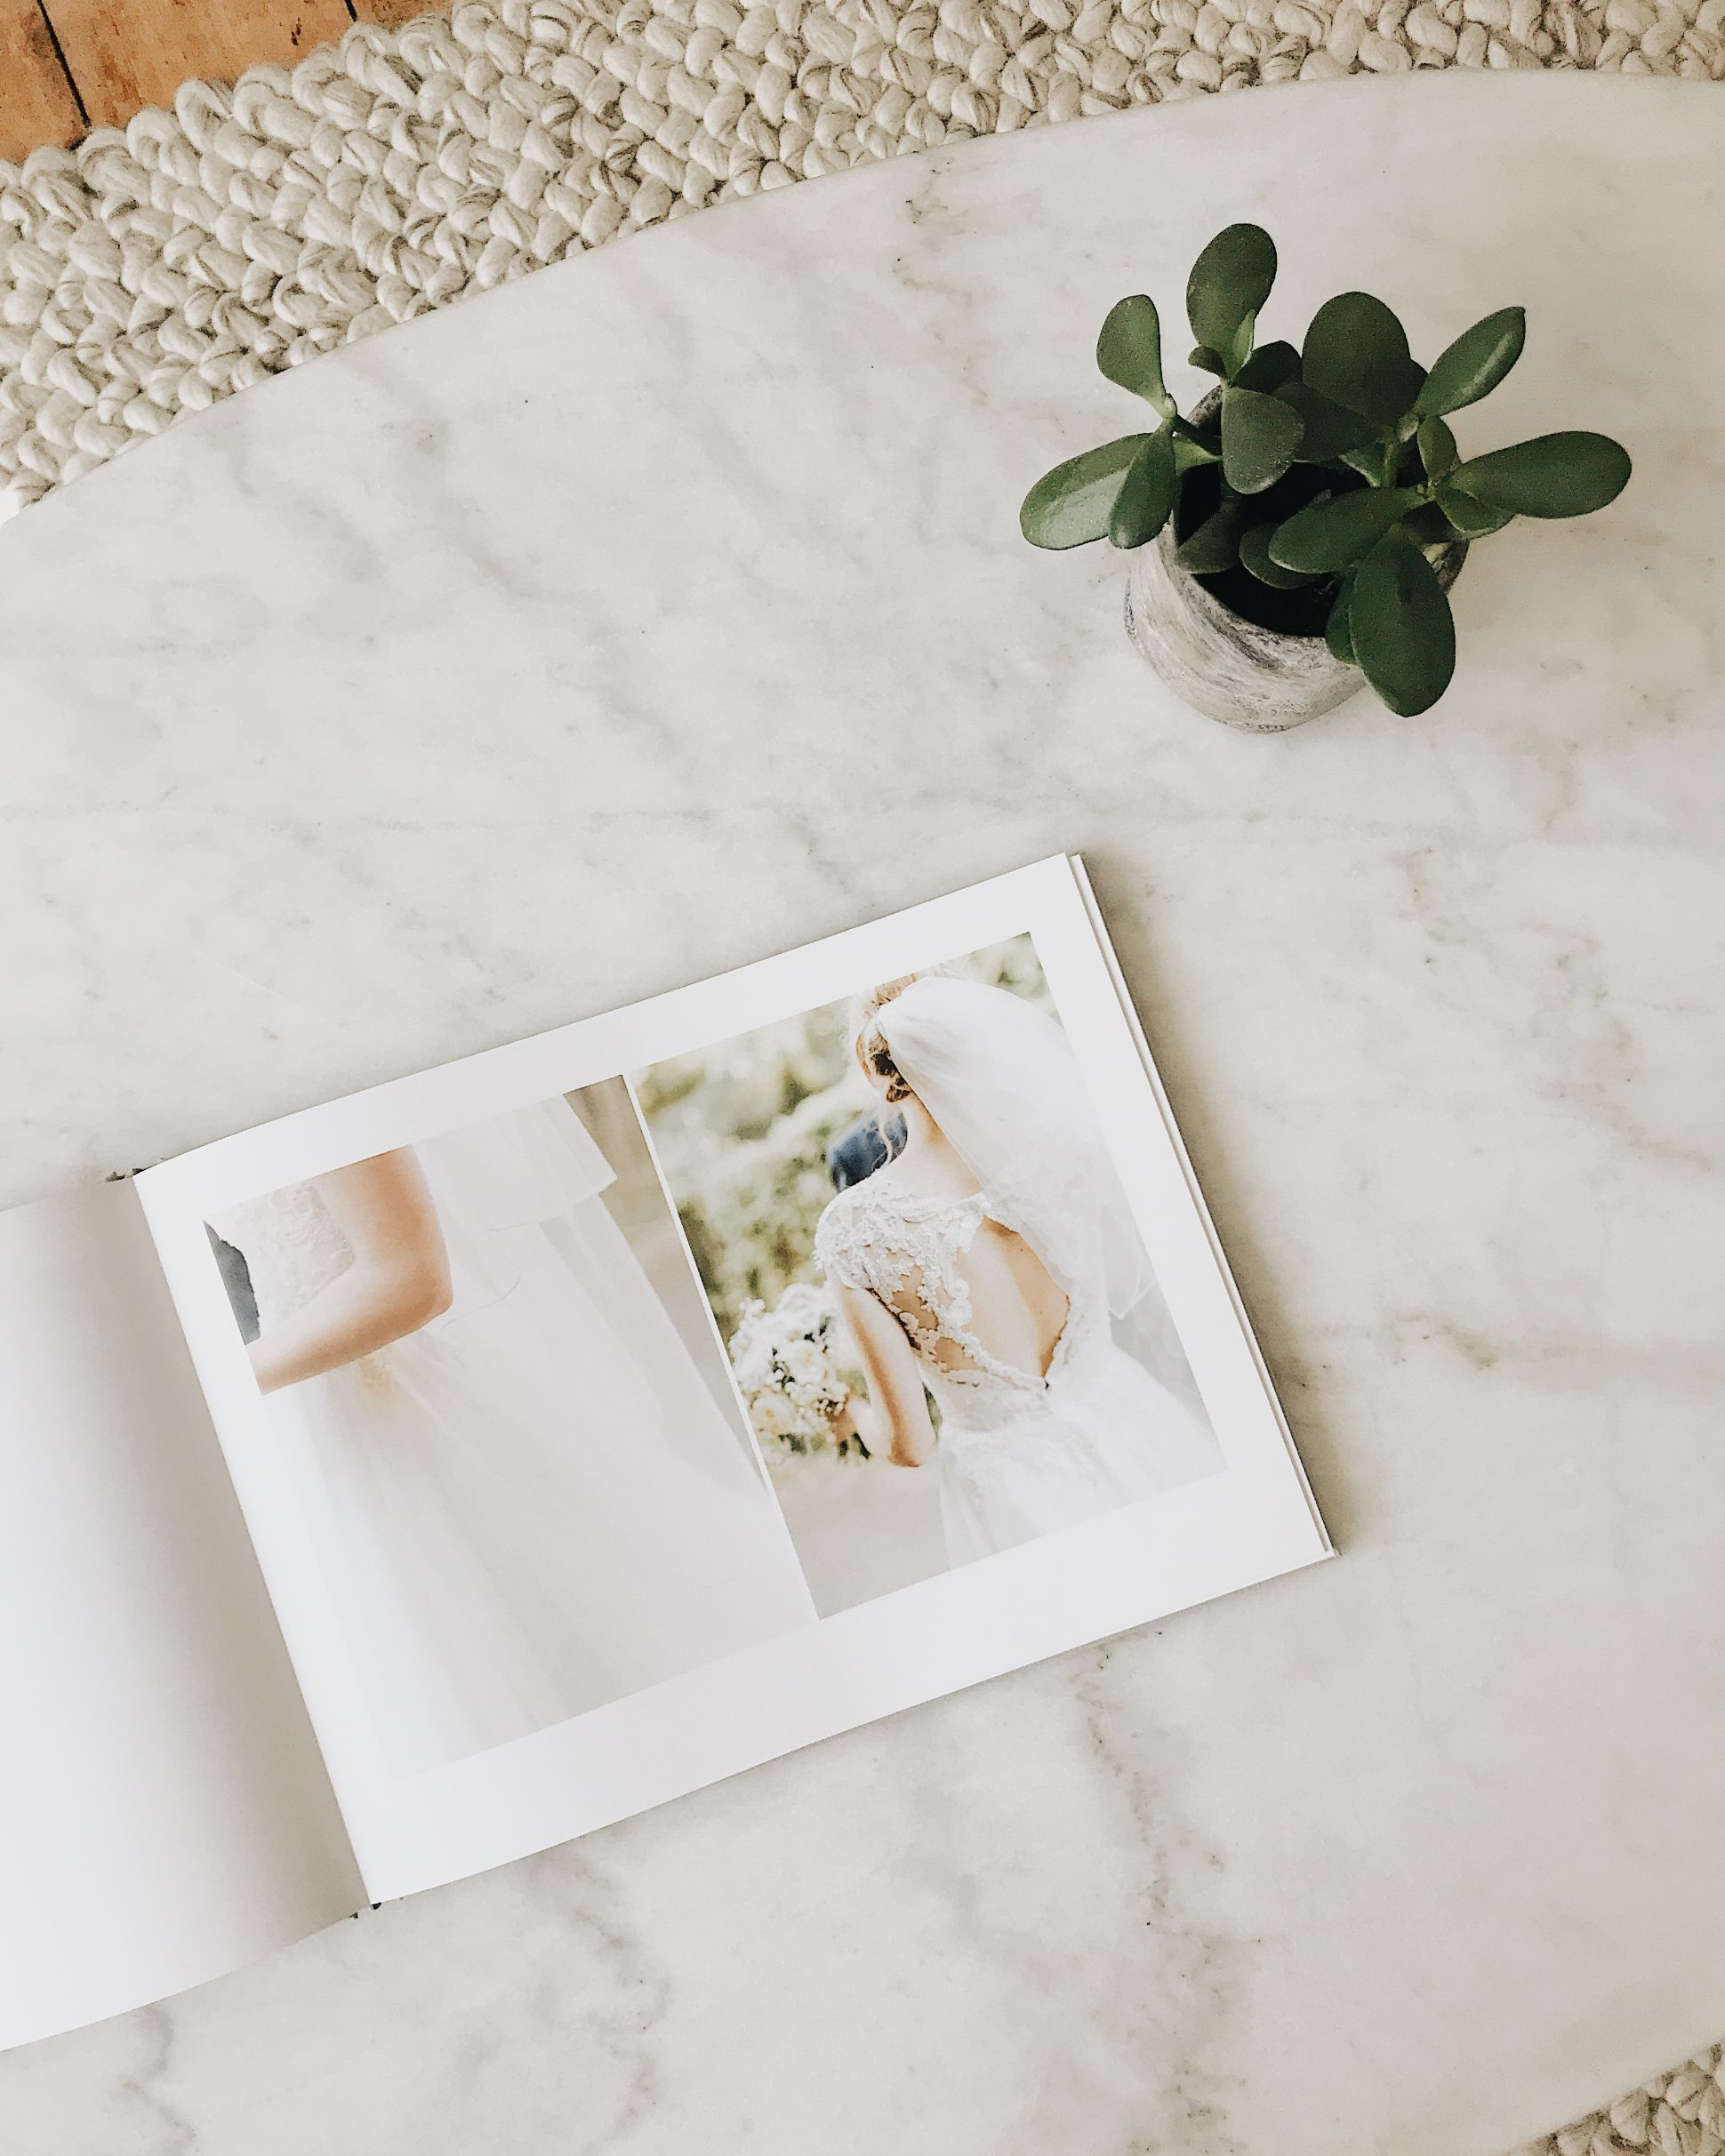 Opening wedding book showing photos of bride